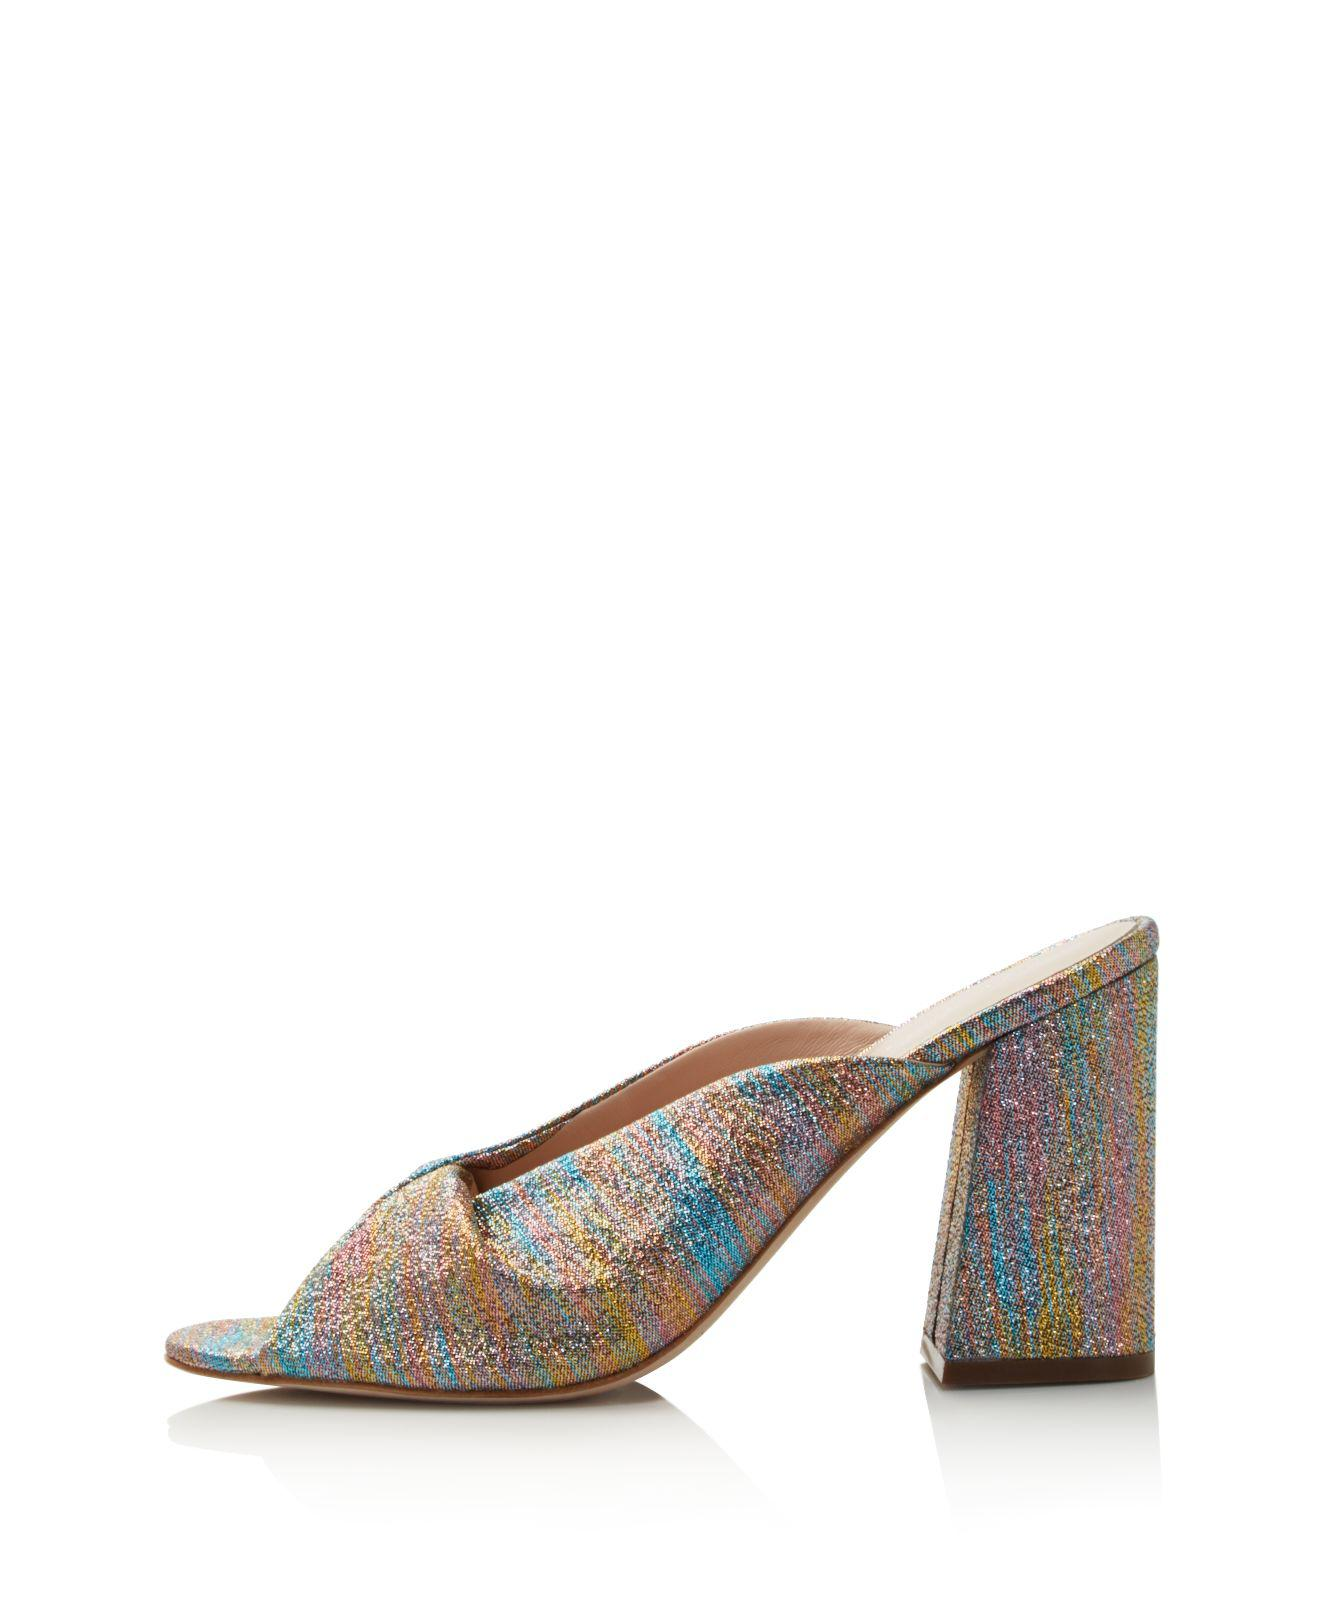 Loeffler Randall Women's Laurel Shimmer Block Heel Slide Sandals - 100% Exclusive cQZLV1GtR